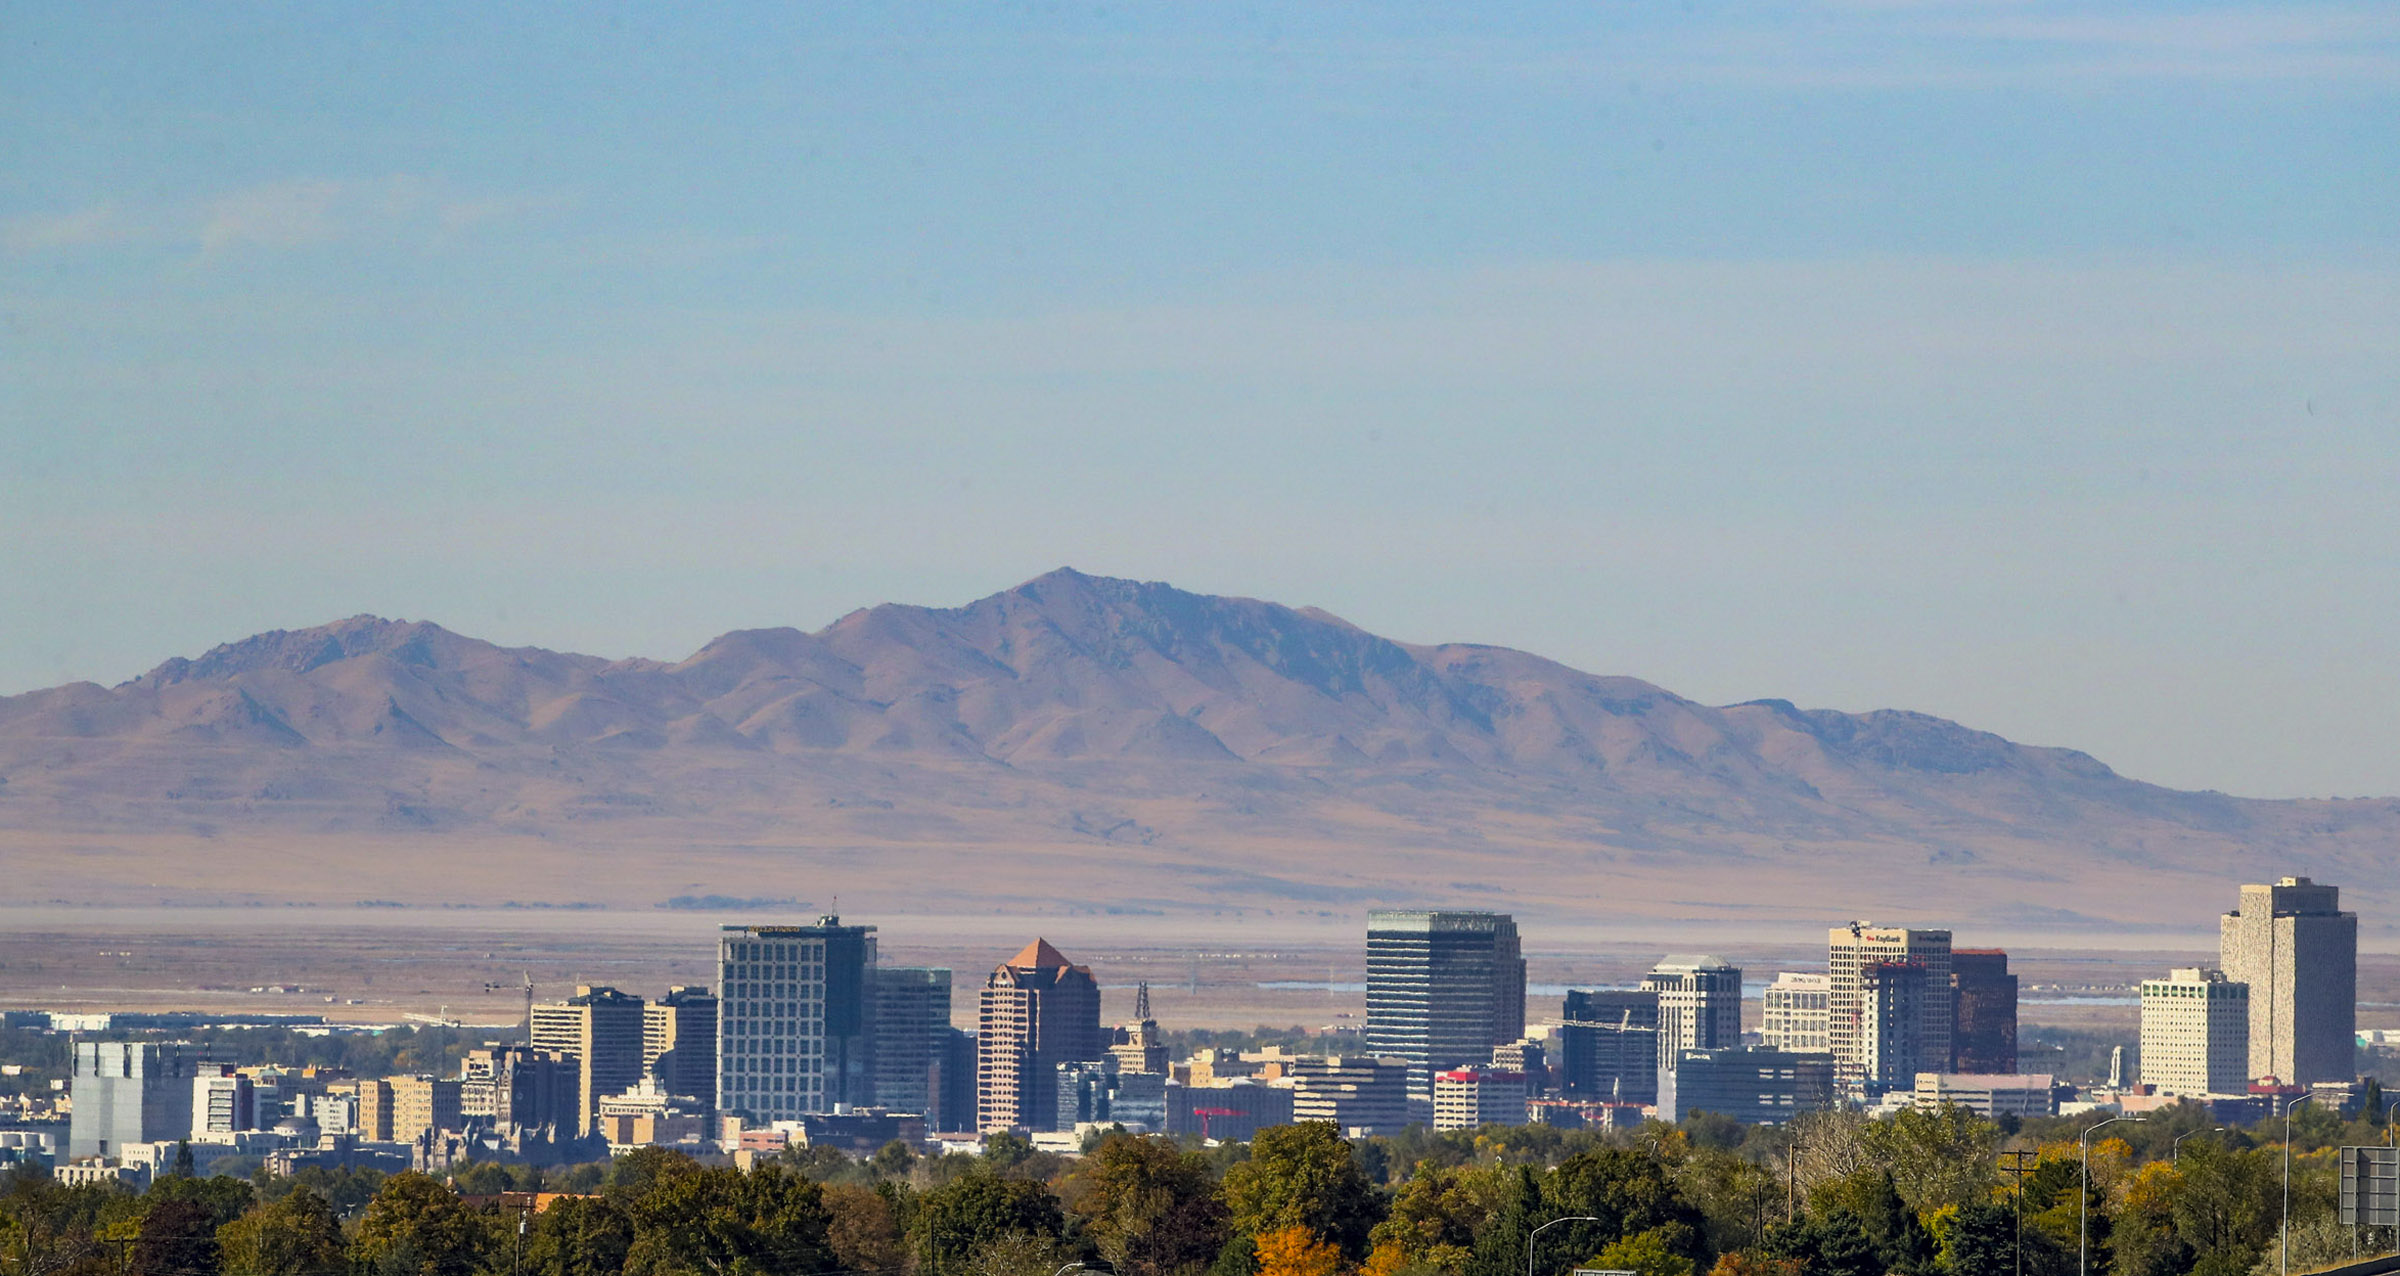 Downtown Salt Lake City is pictured on Monday, Oct. 12, 2020.